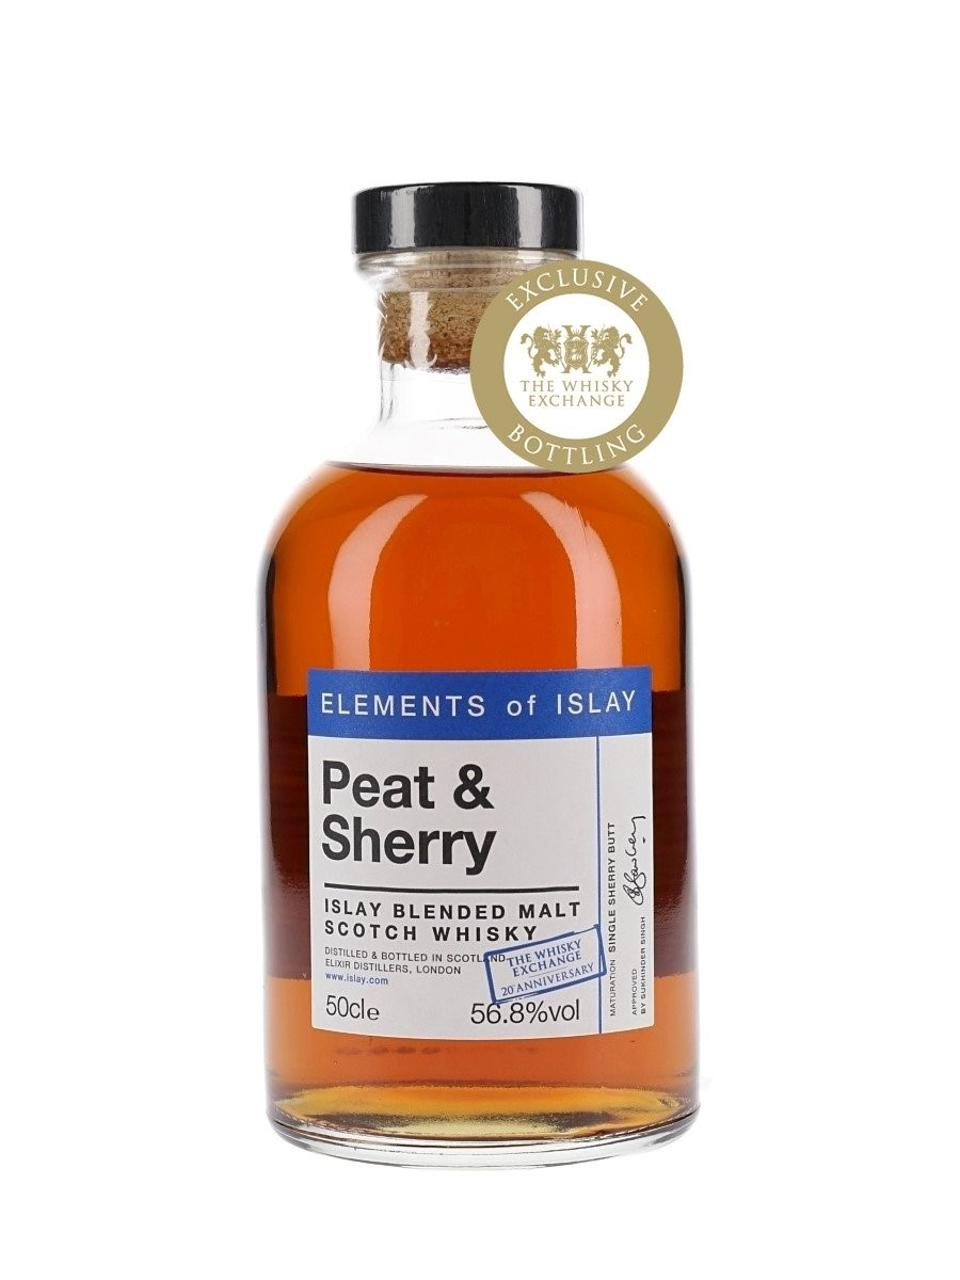 Elements of Islay, Peat Sherry